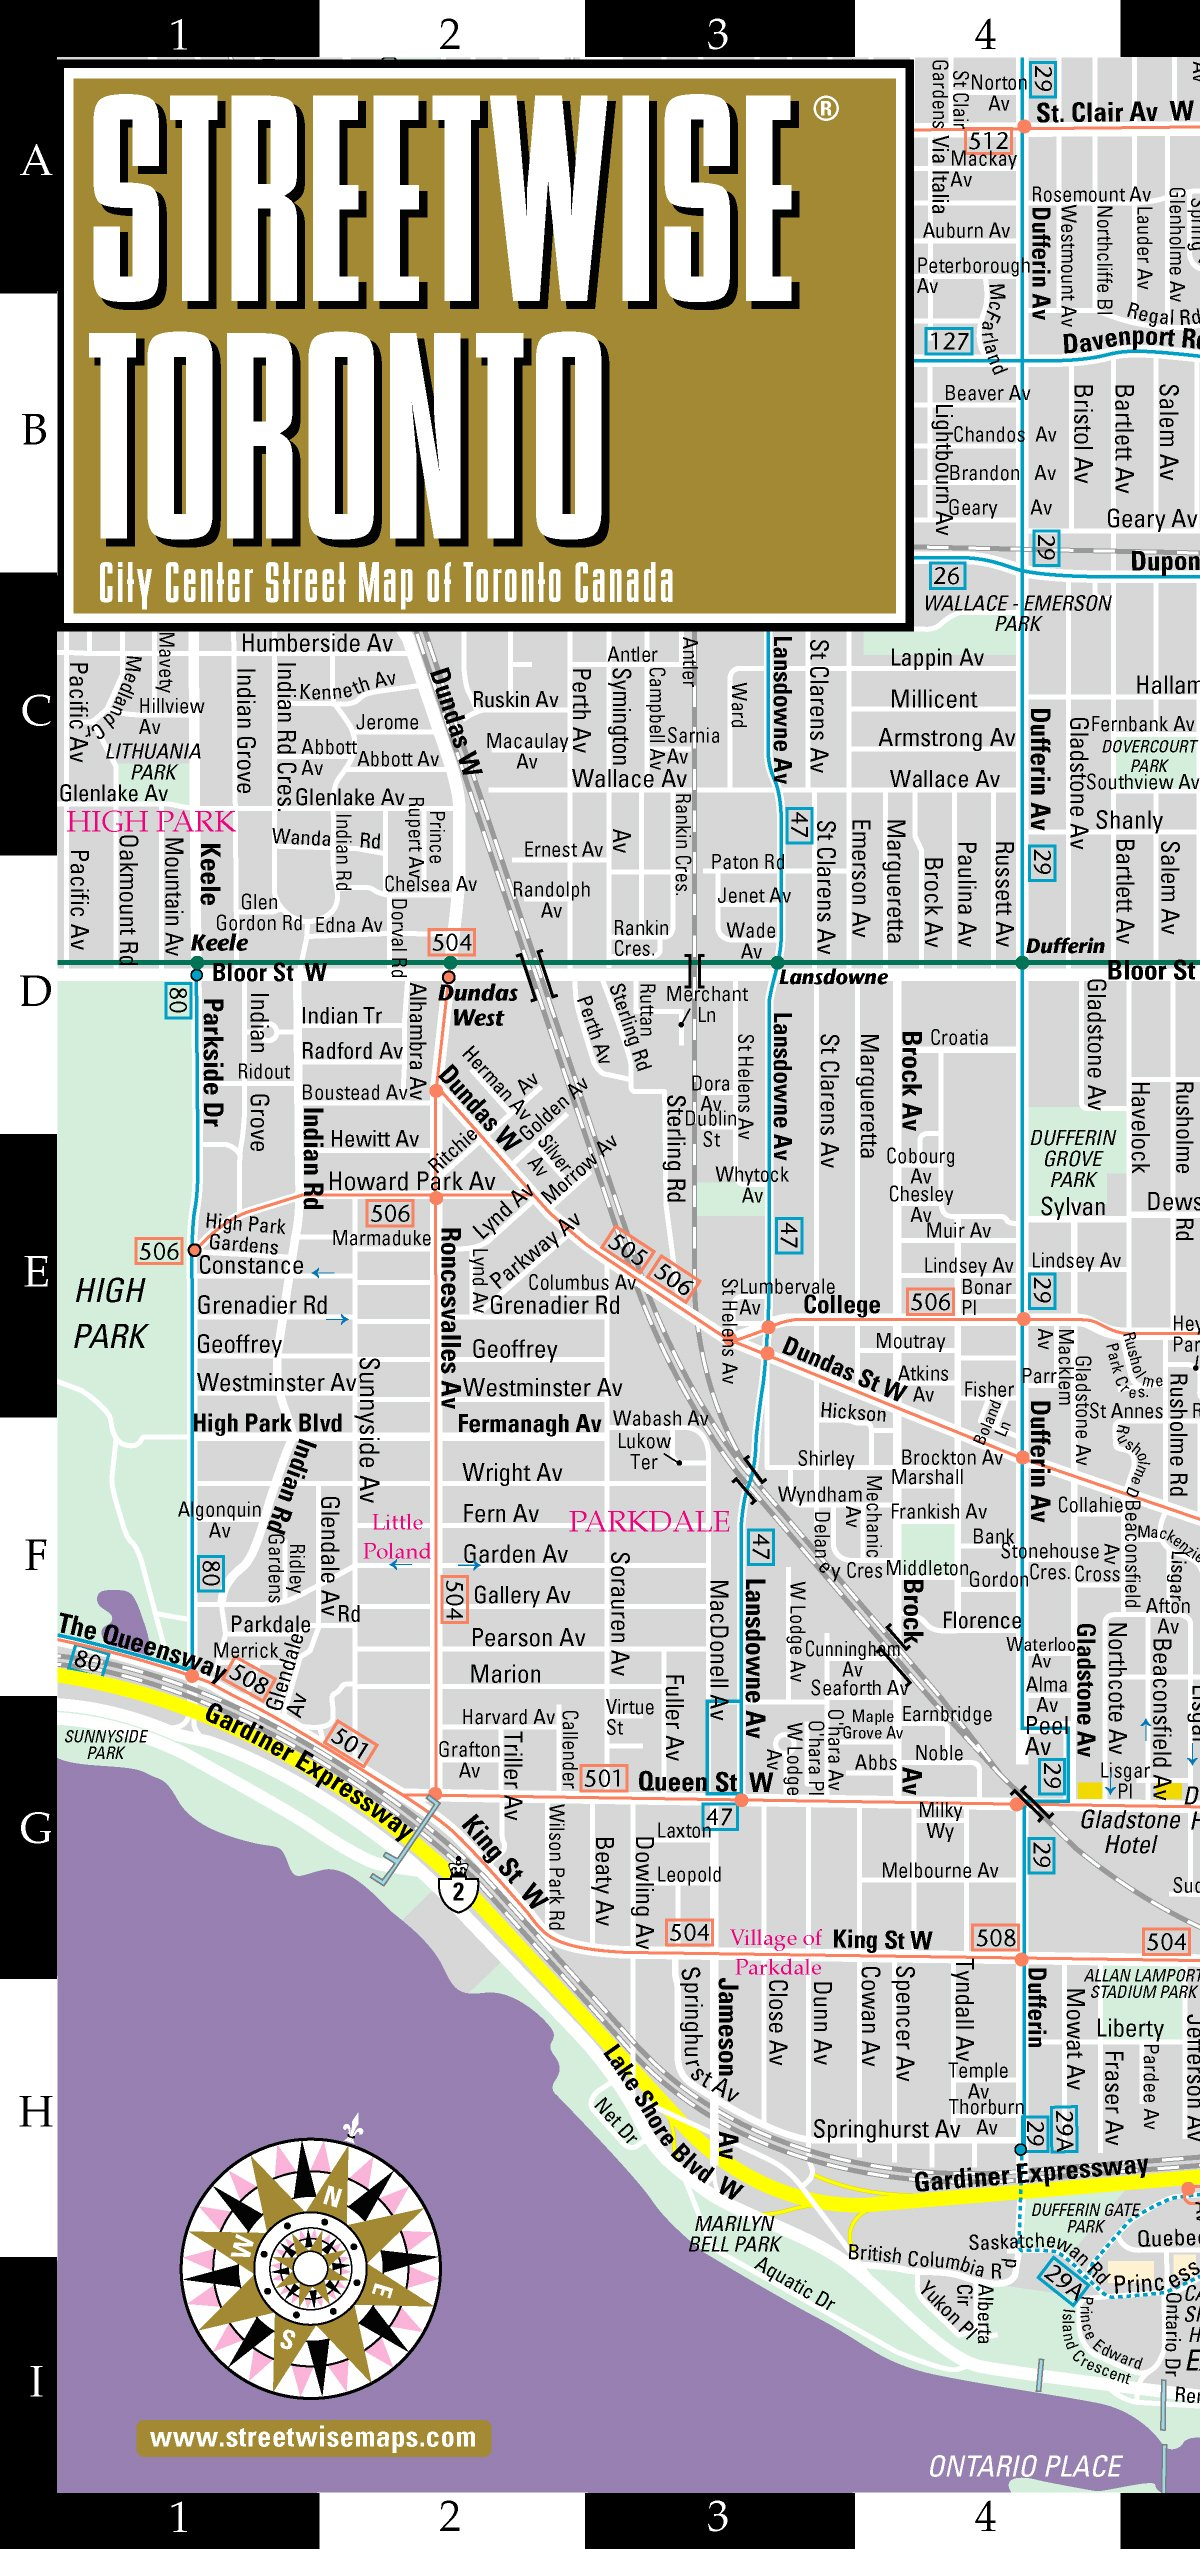 Toronto, Canada Map Streetwise Toronto Map   Laminated City Center Street Map of